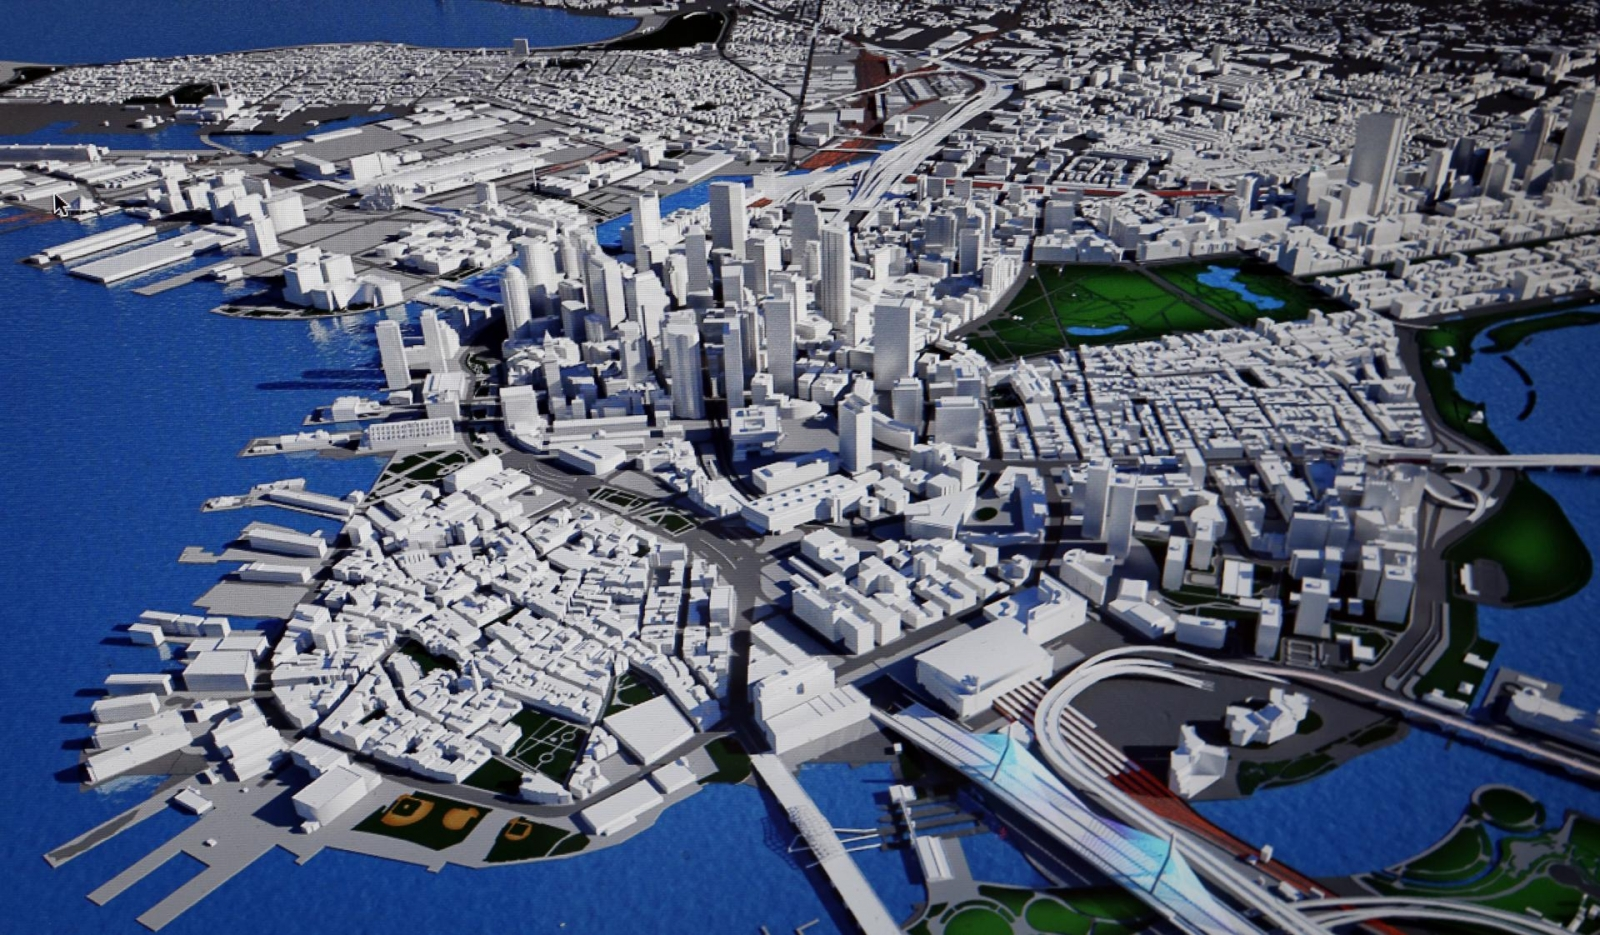 Boston selected by the USOC as their candidate city for the 2024 Summer Games